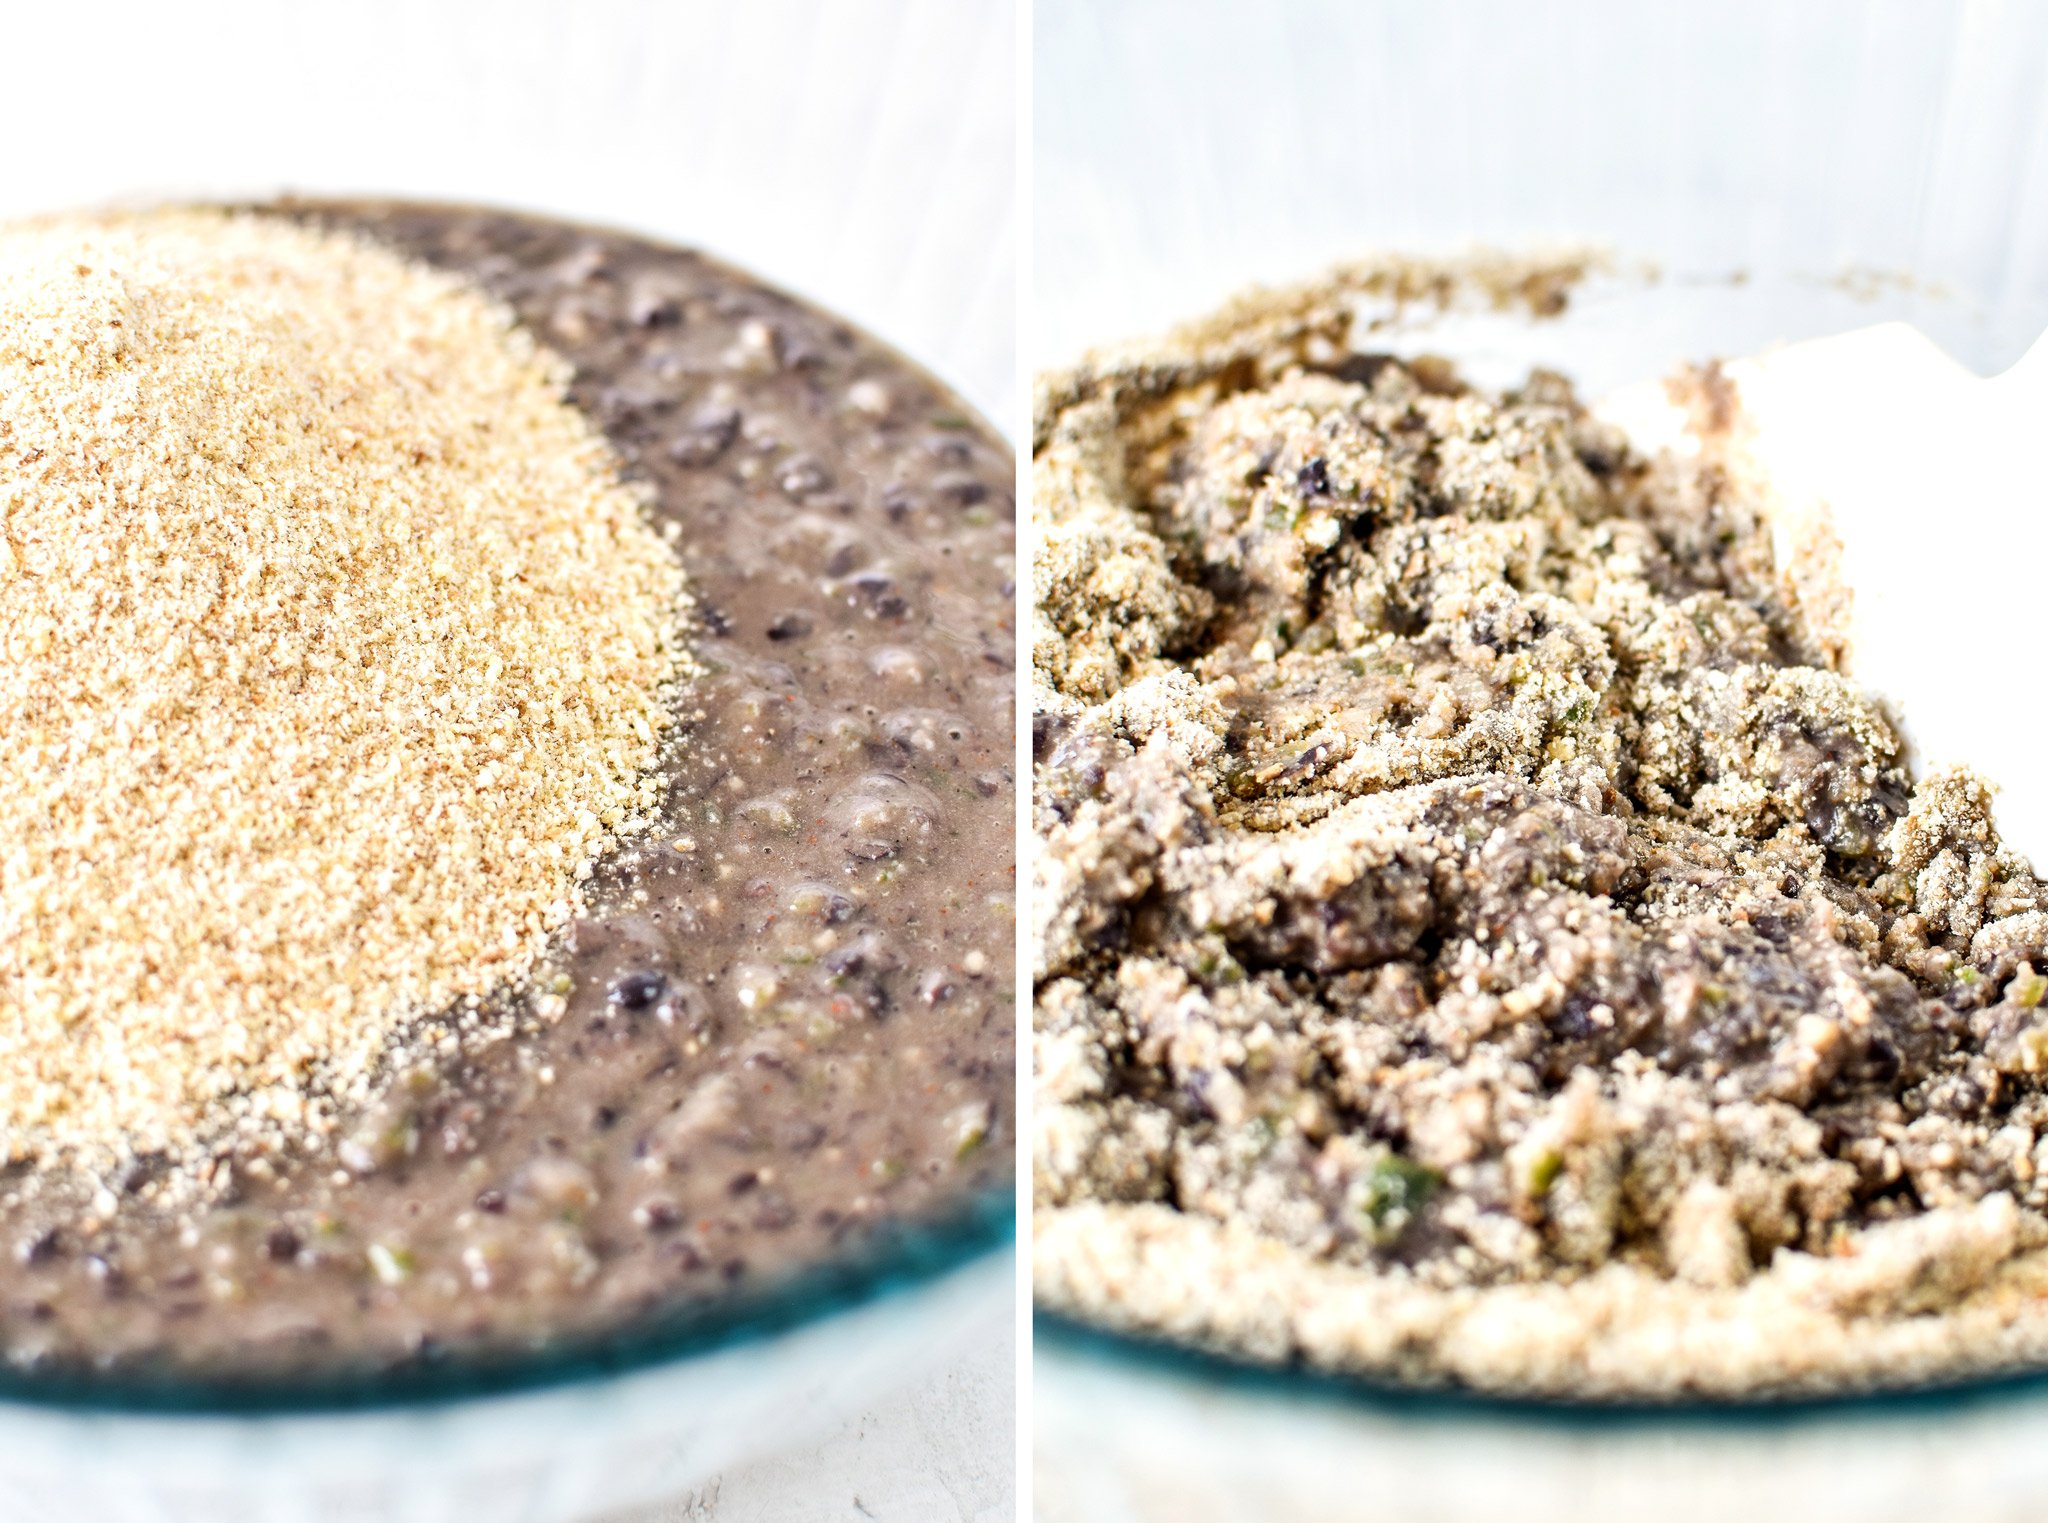 Left: Black bean burger mixture with breadcrumbs added. Right: Black bean burger mixture with the breadcrumbs being stirred in.